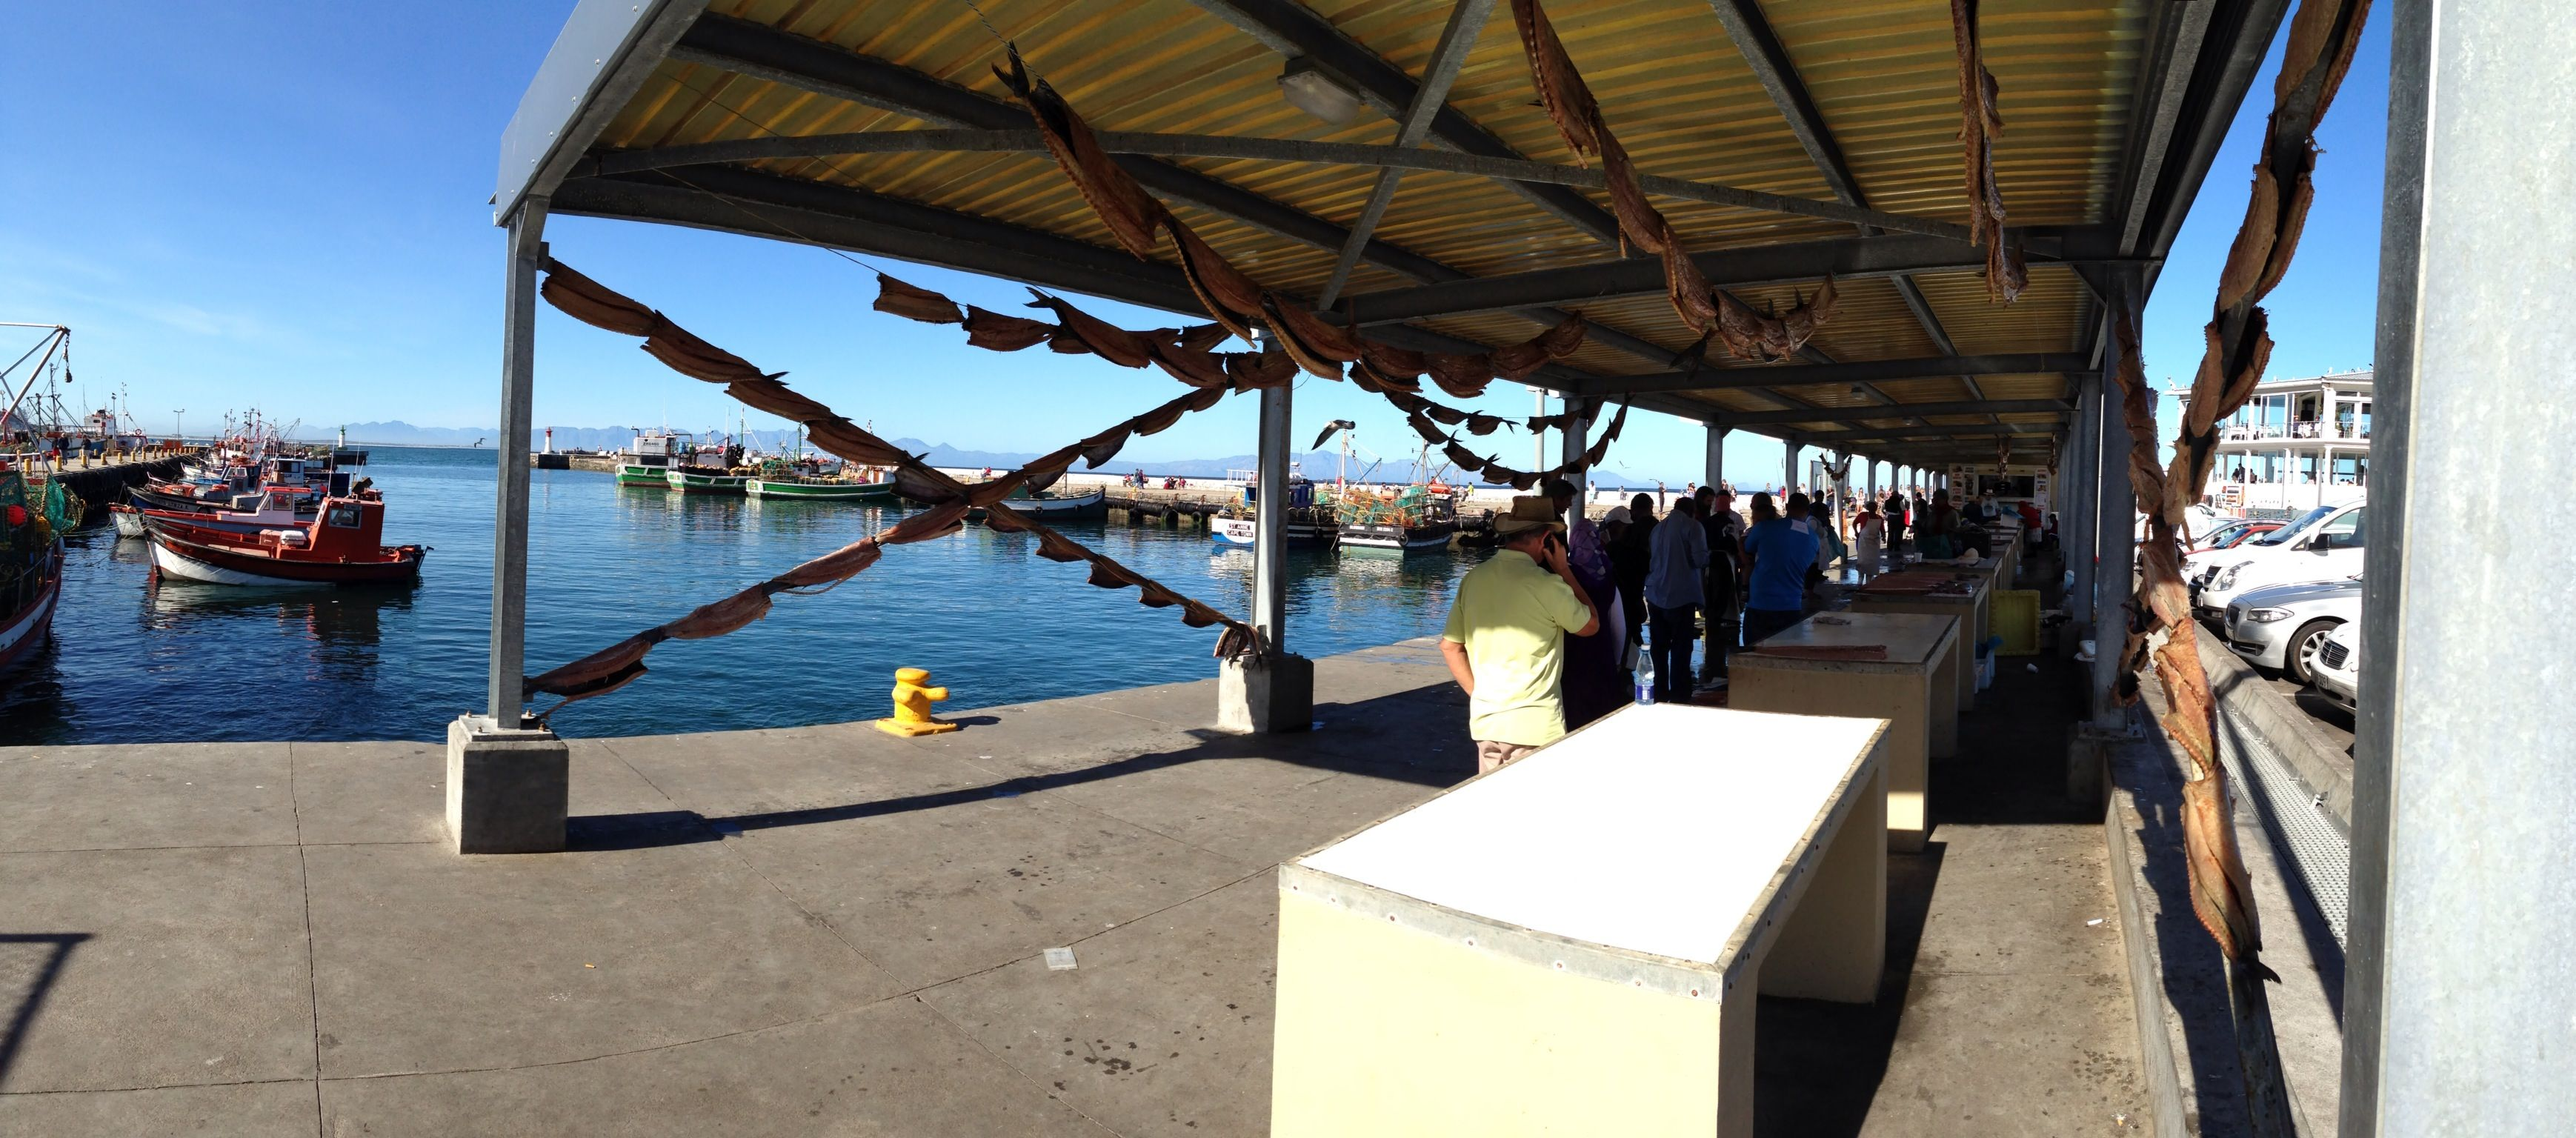 Fish sales in the harbour